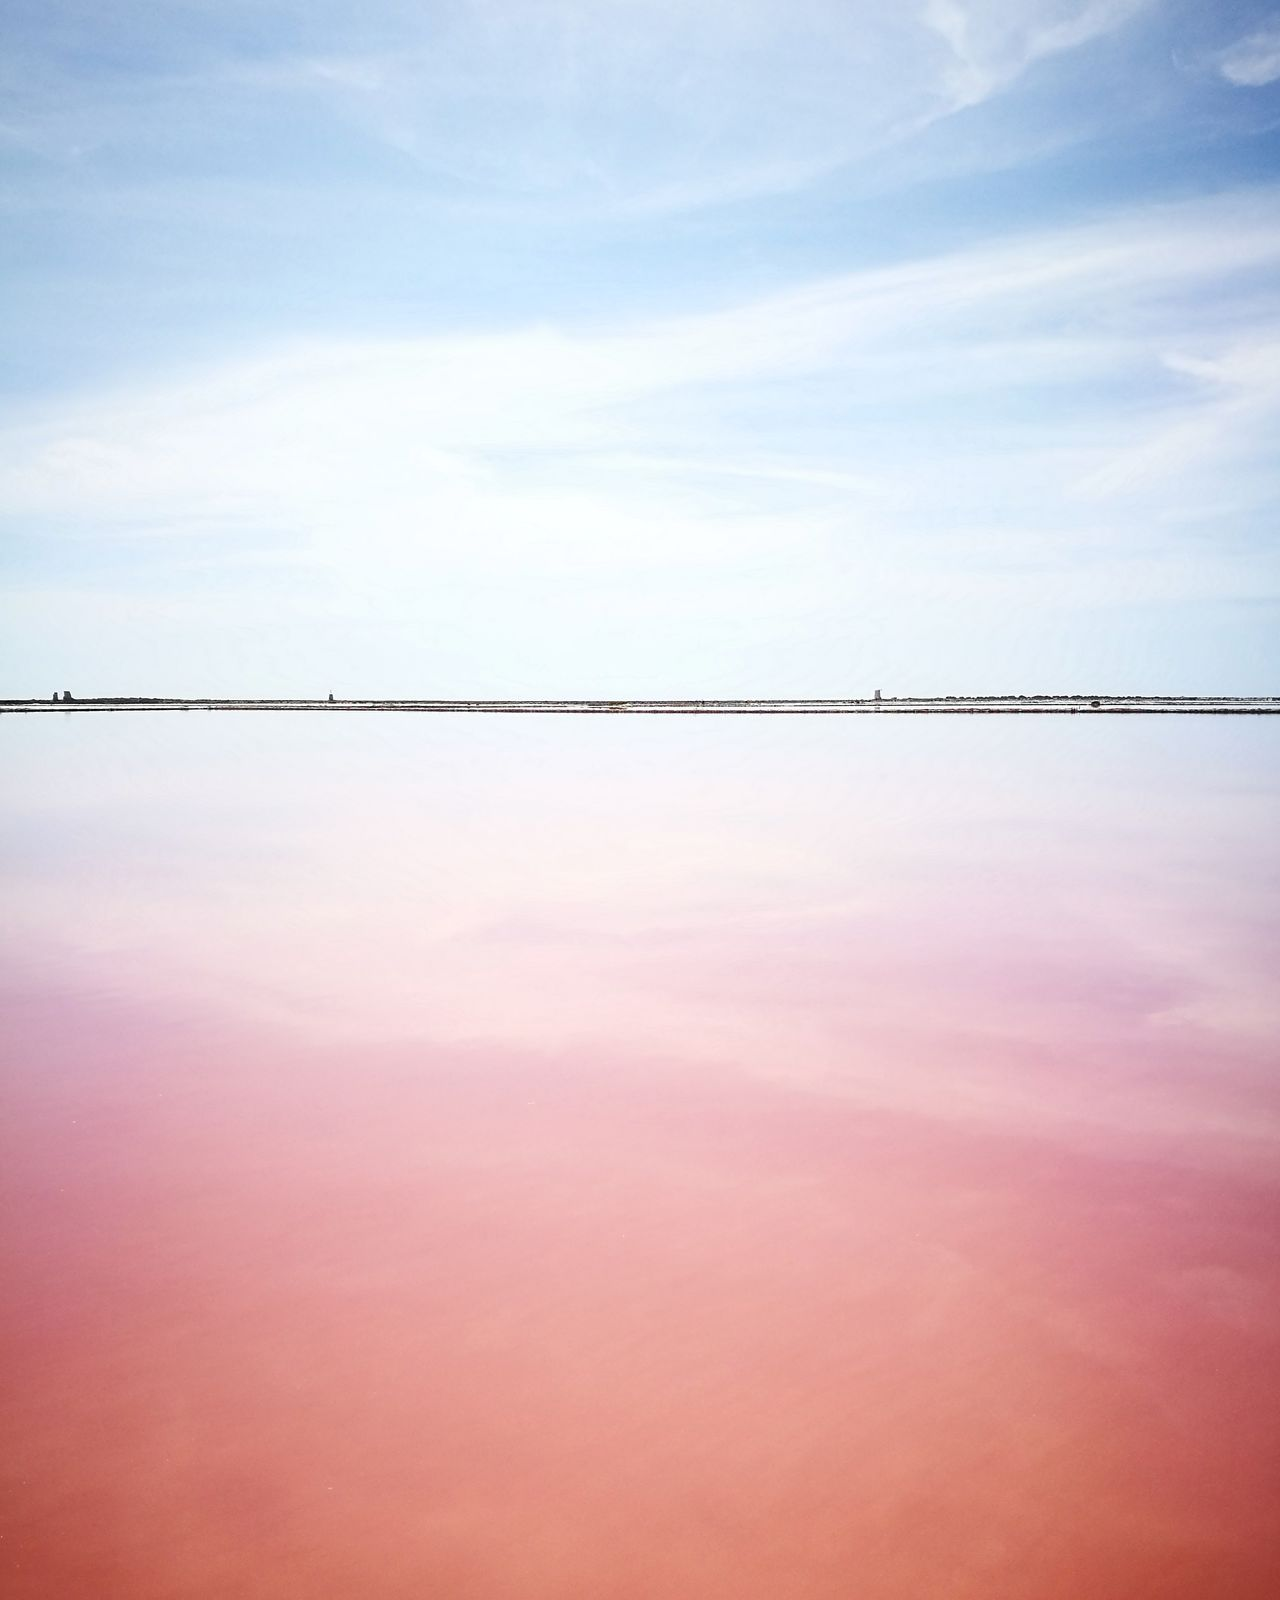 Le Saline dell'Isola lunga di Torre San Teodoro Taking Photos Enjoying Life Italy Essence Of Summer TheMinimals (less Edit Juxt Photography) Notes From Babylon Discover Italy / With Ale Sicilia Youmobile Shootermag HuaweiP9 Italia Walking Around Enjoying Life Landscape Summertime Colour Of Life Feel The Journey Fine Art Photography